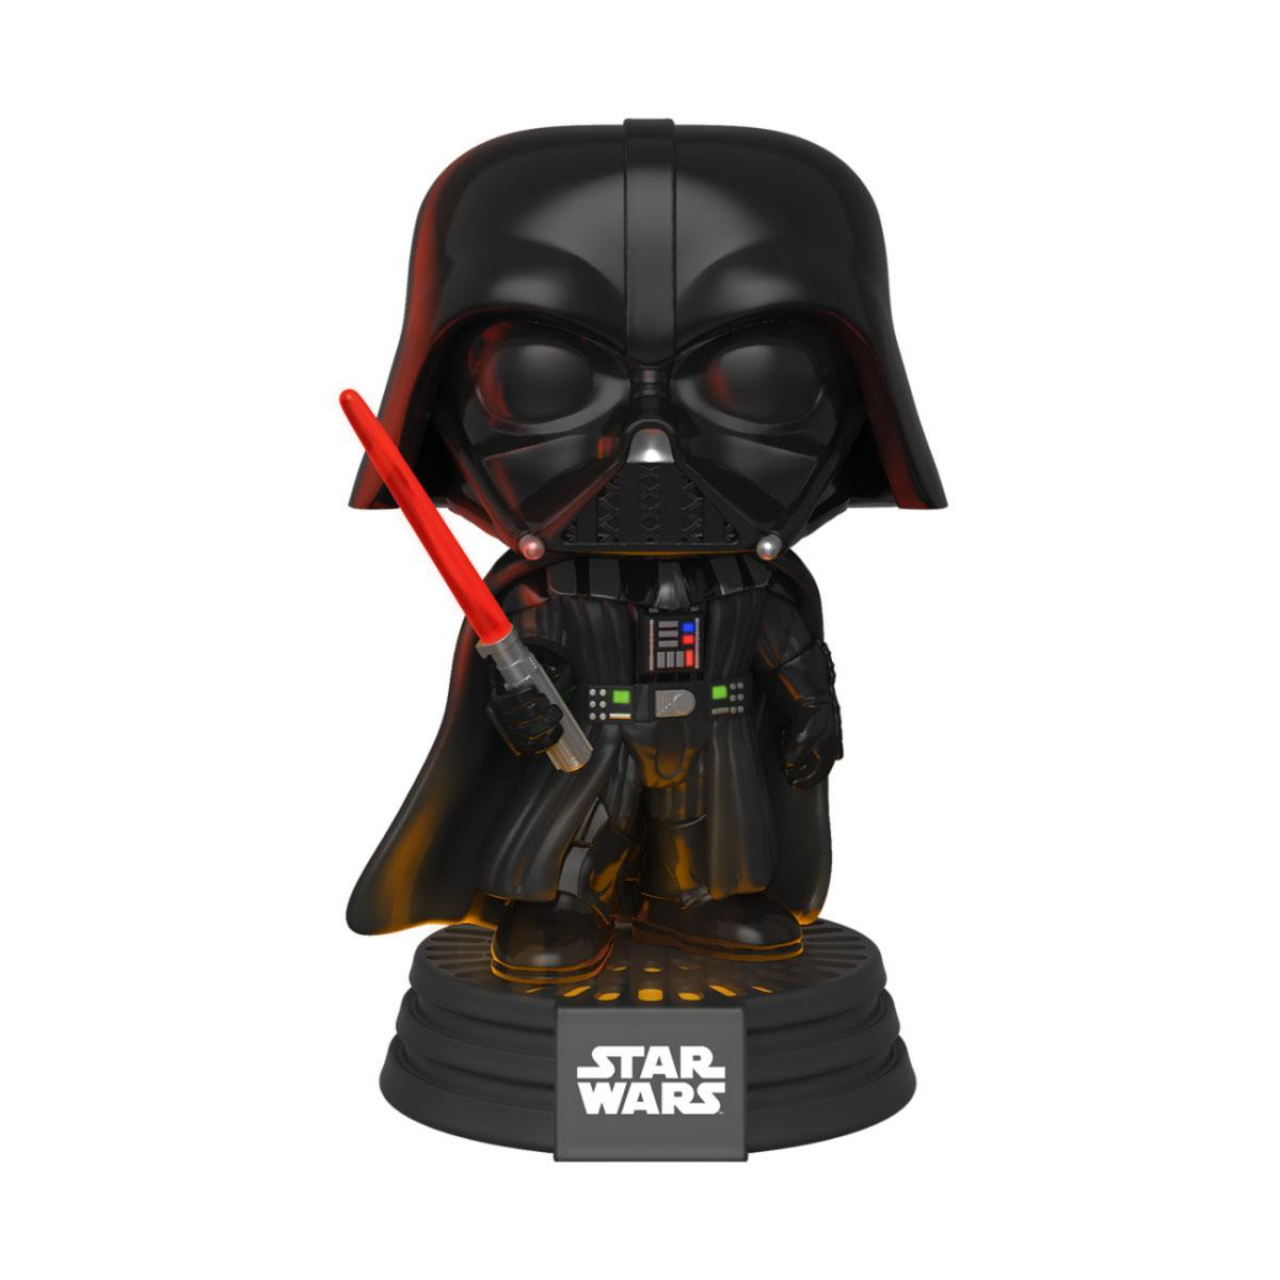 Star Wars Electronic POP! Movies Vinyl Figure with Sound & Light Up Darth Vader 9 cm